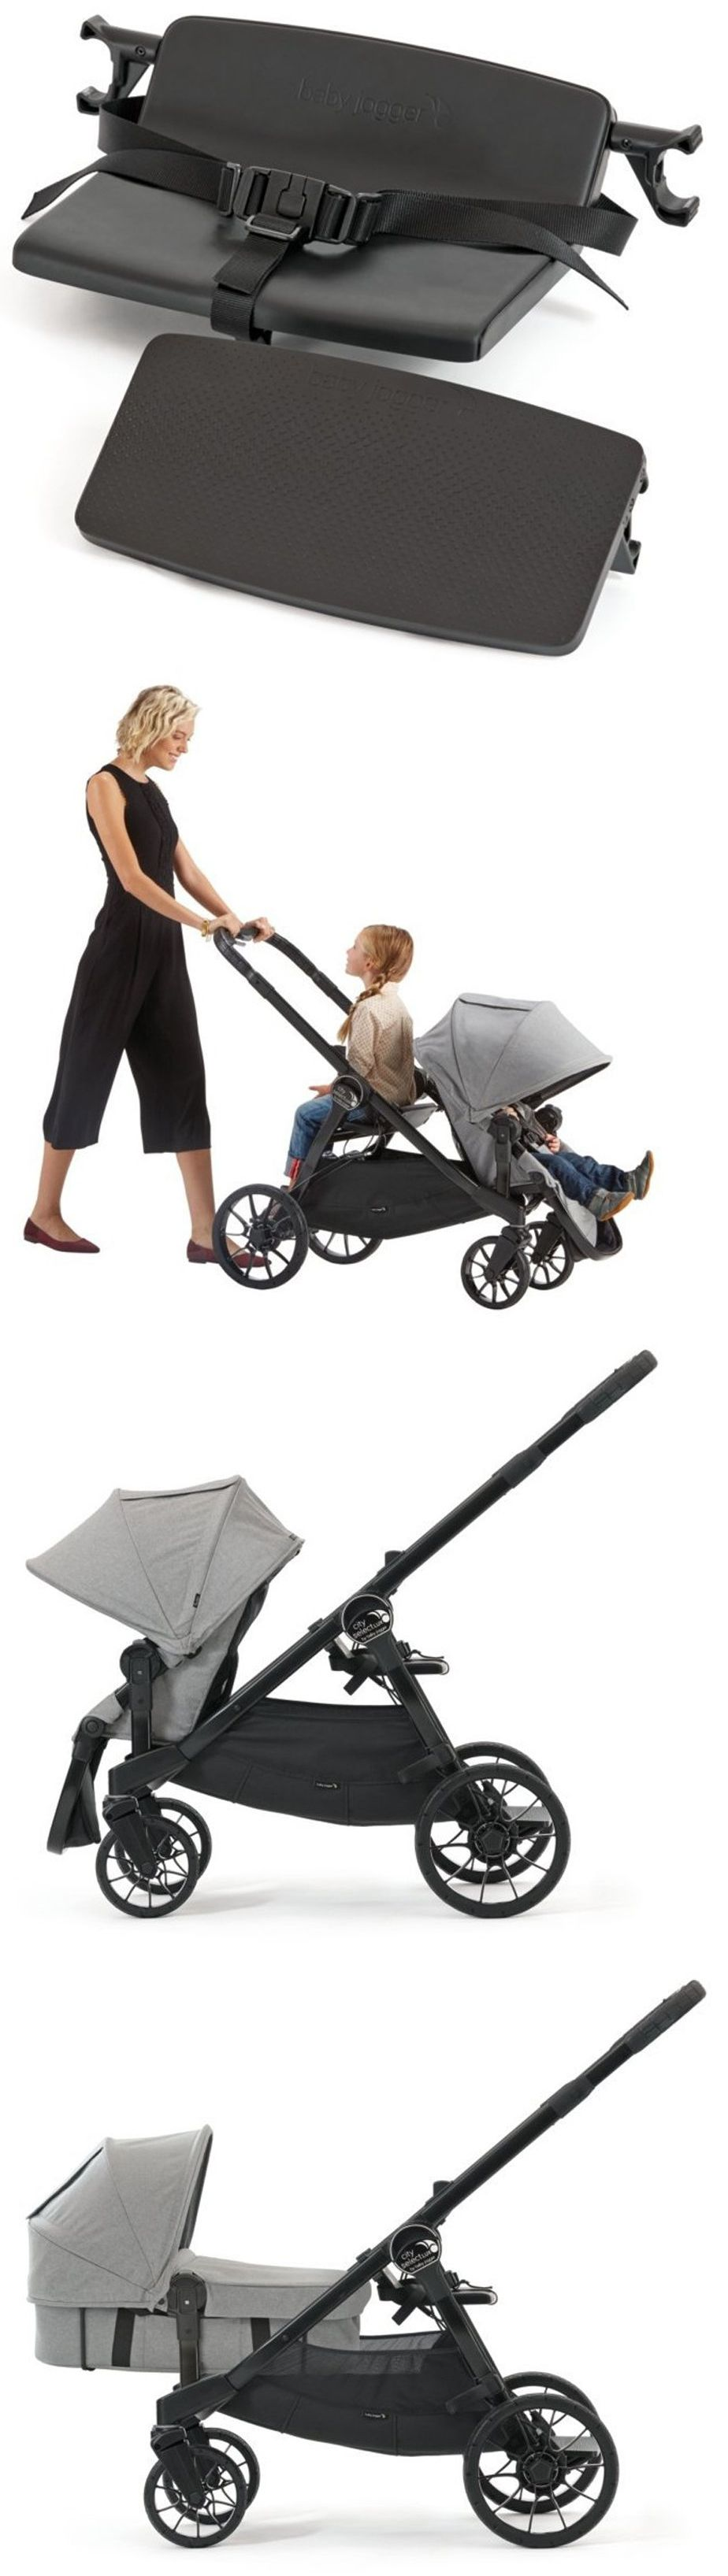 Bench Seat Attachment For Baby Jogger City Select LUX